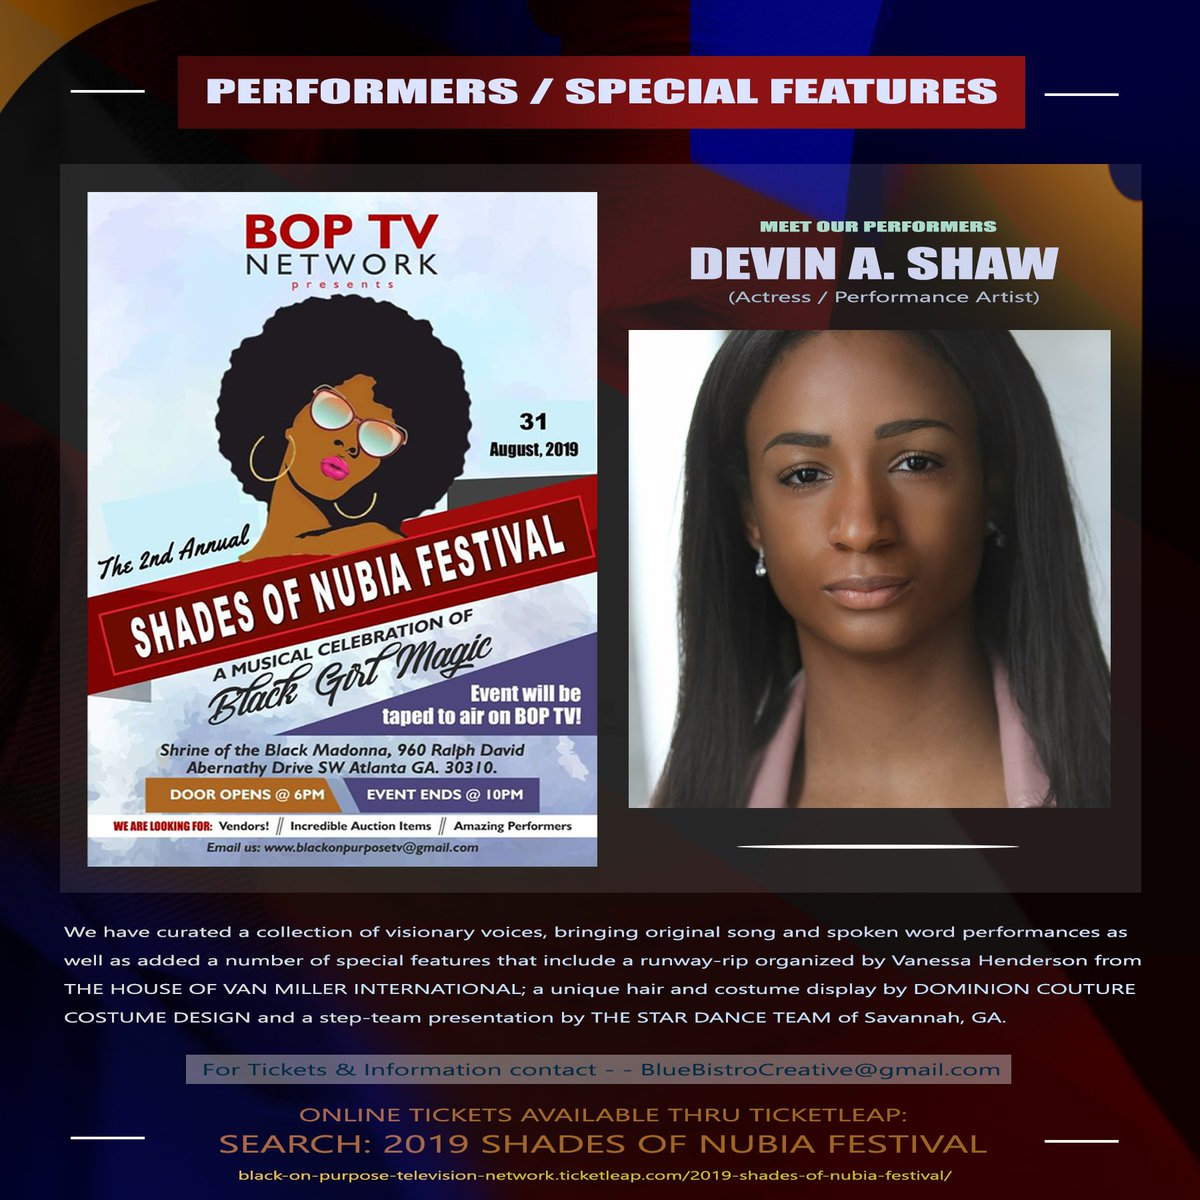 ITS THAT TIME AGAIN ATLANTA! The Shades of Nubia Festival is an amazing event that honors the creative genius and achievements of Black Women in the arts. ow.ly/AlP250vJkfd